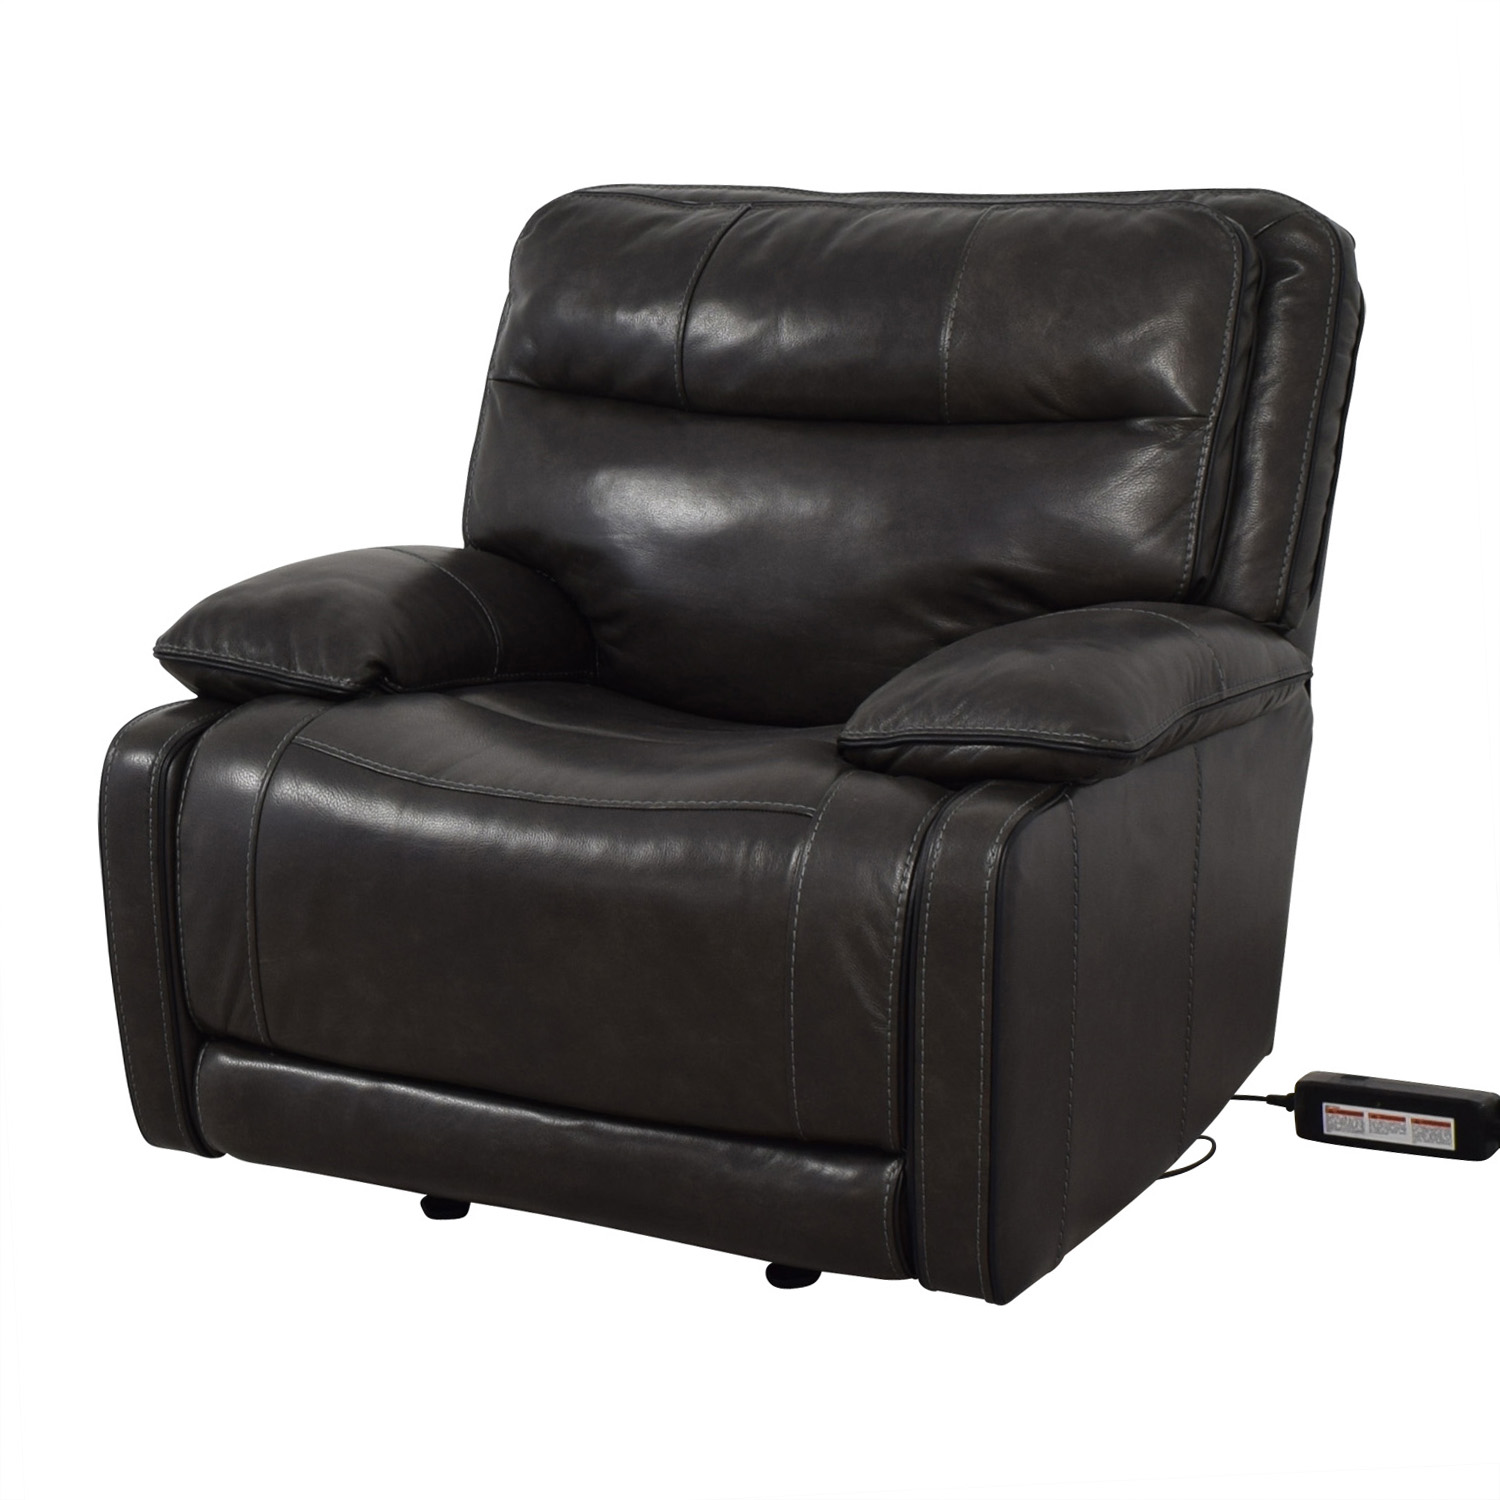 Palladum Palladum Leather Metal Power Recliner Recliners